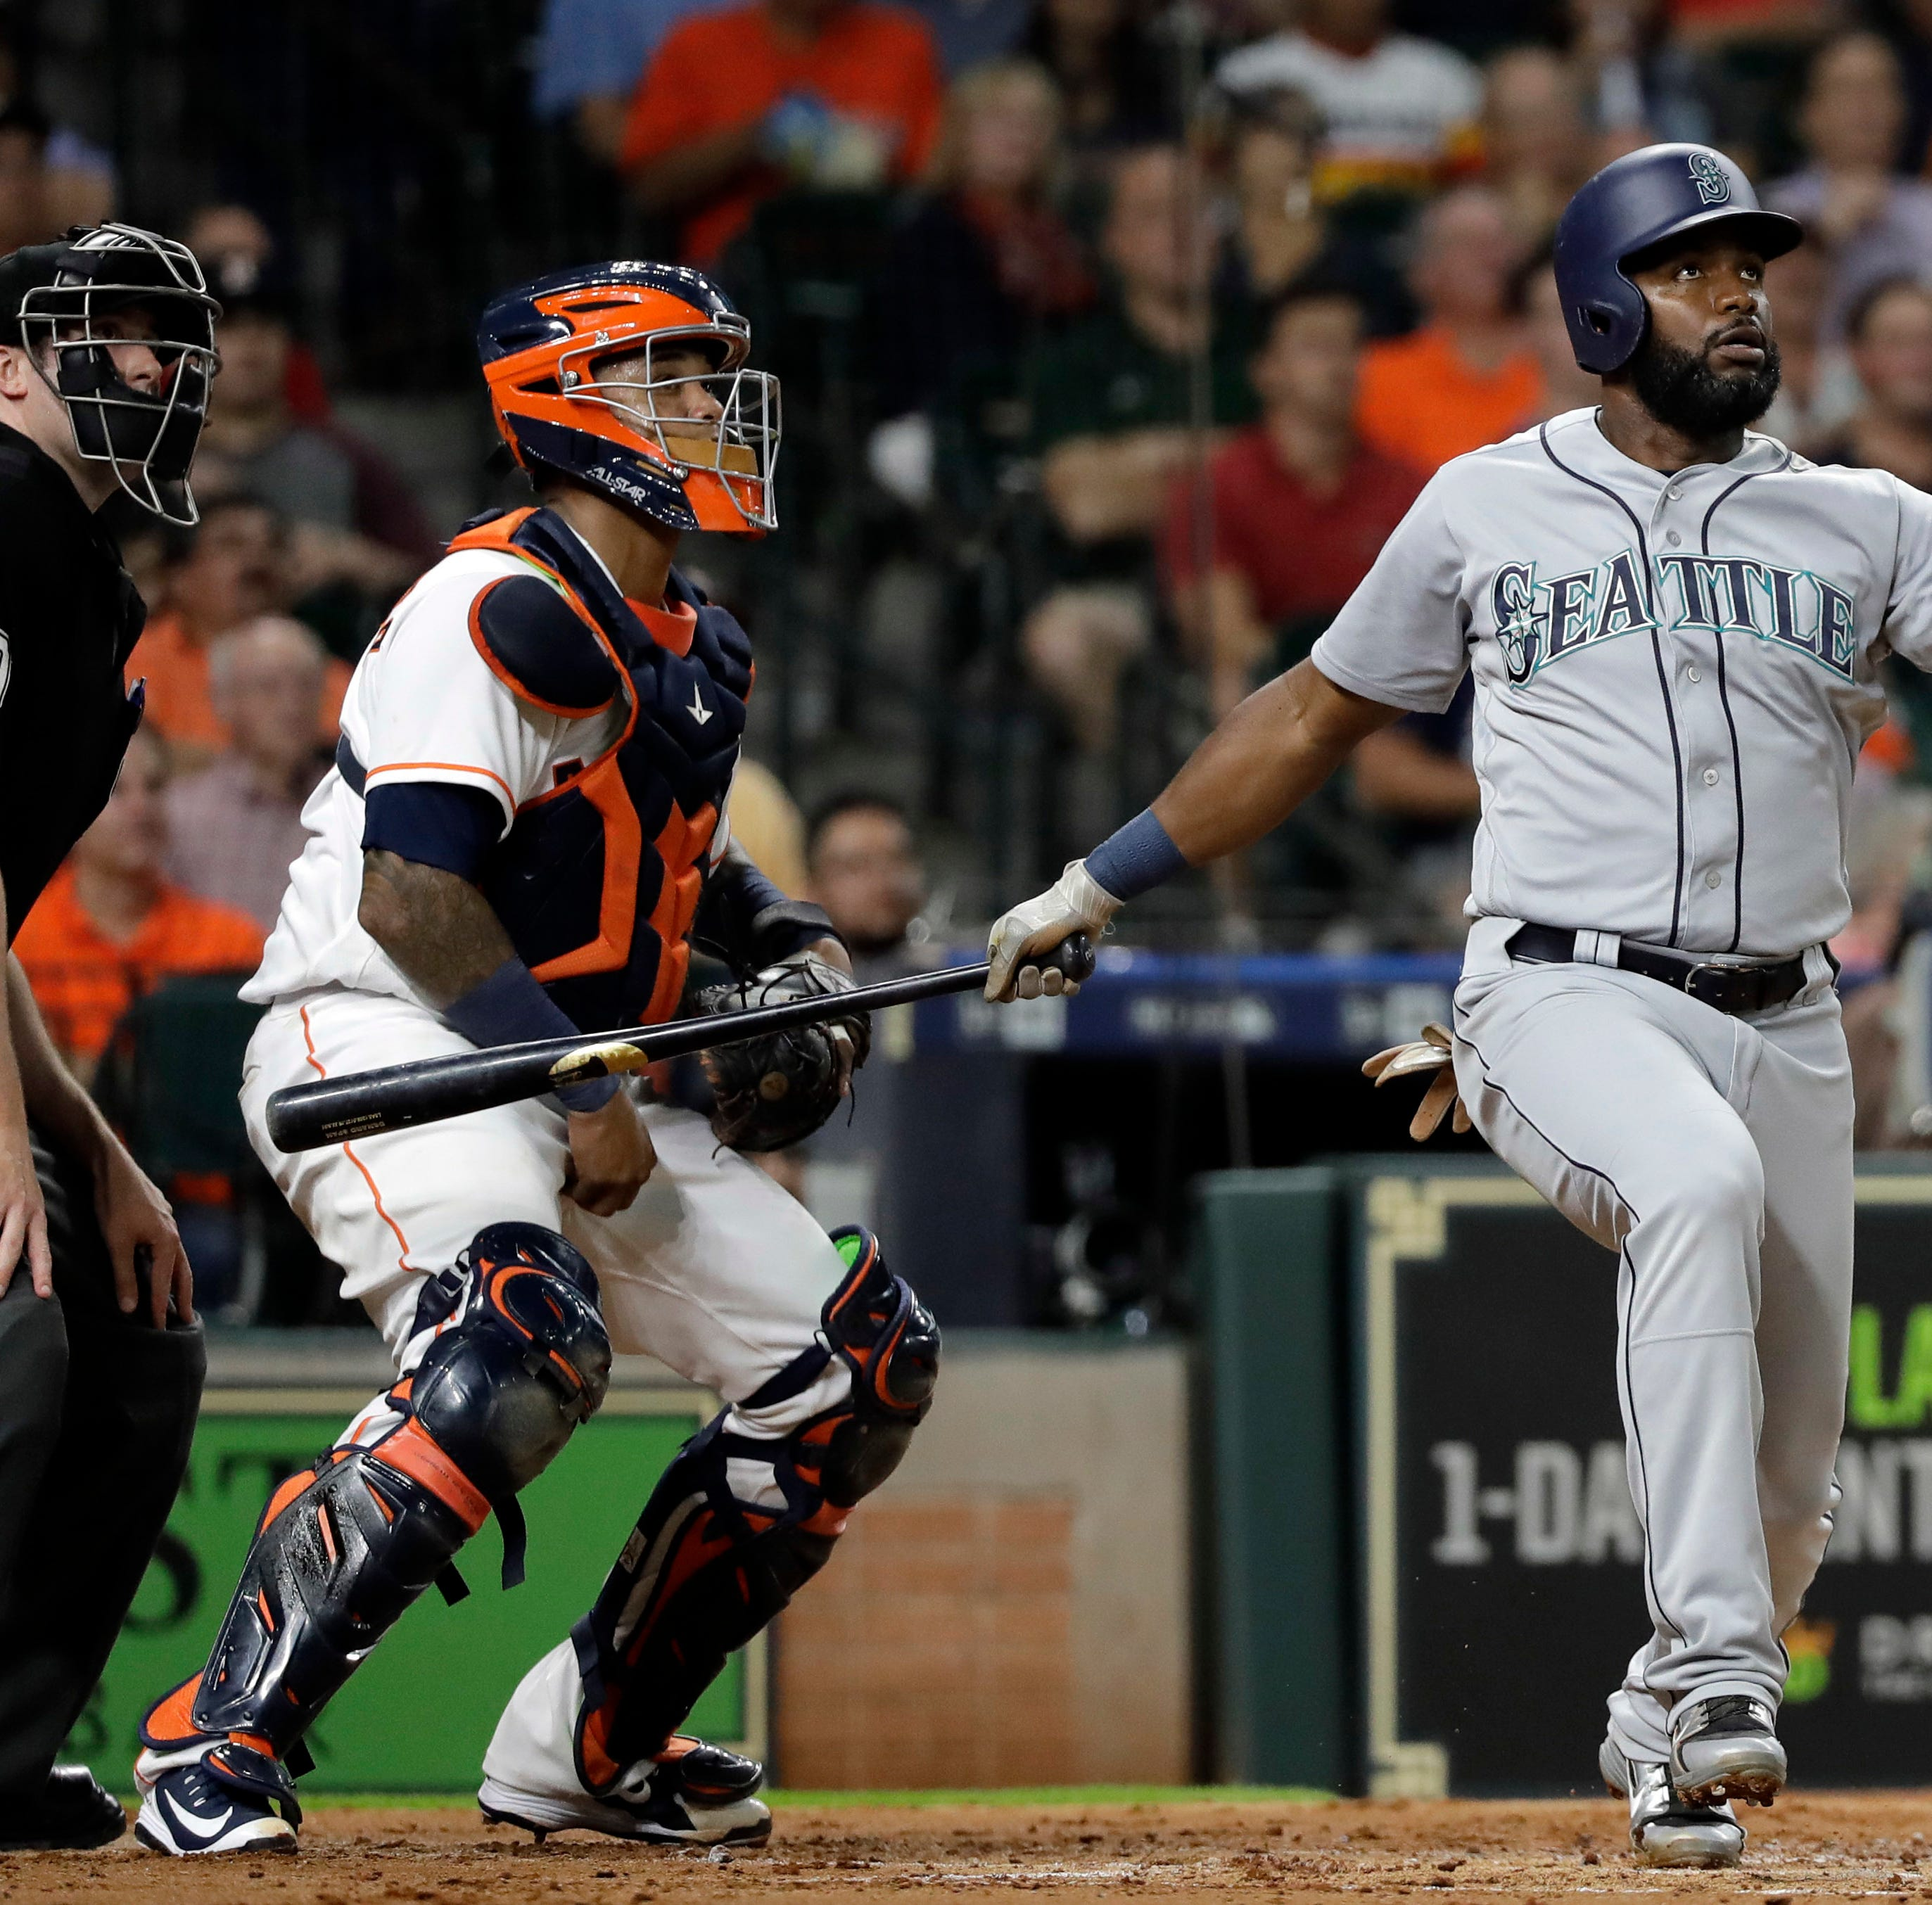 Seattle Mariners roster breakdown: Team could be in for a tumultuous offseason